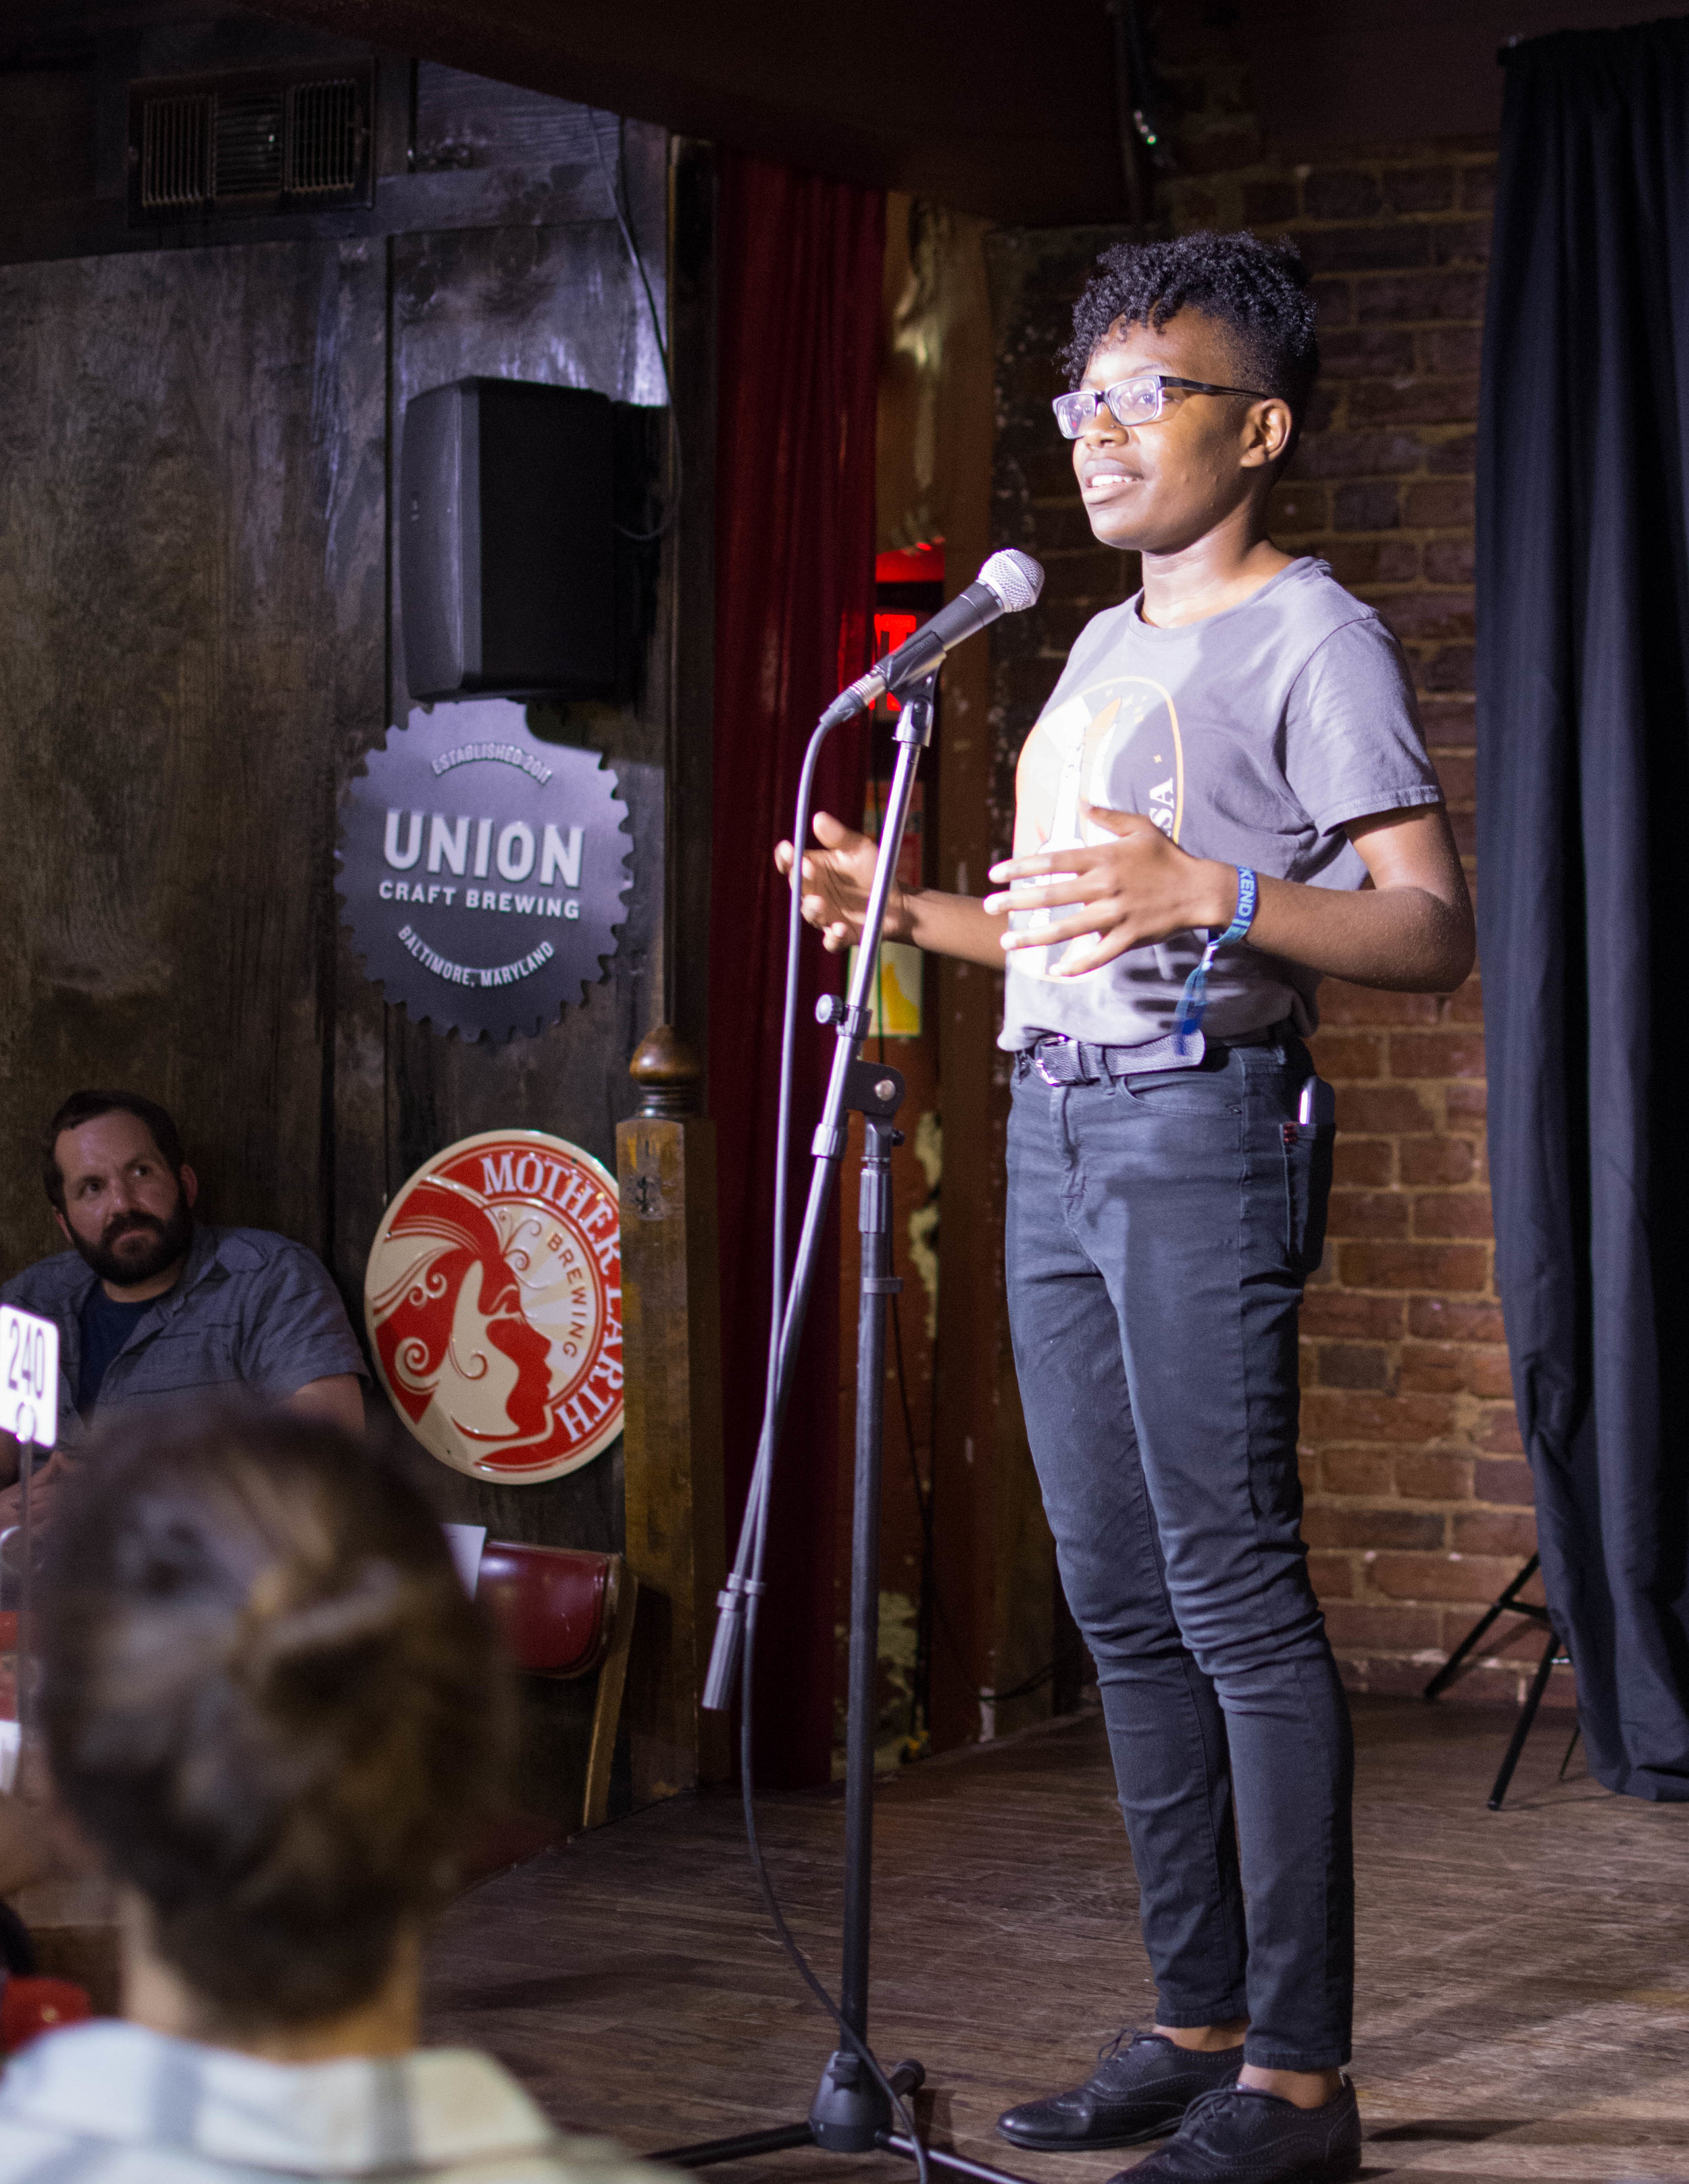 Anicca Harriot shares her story with the Story Collider audience at Bier Baron Tavern in Washington, DC in August 2018. Photo by Lauren Lipuma.